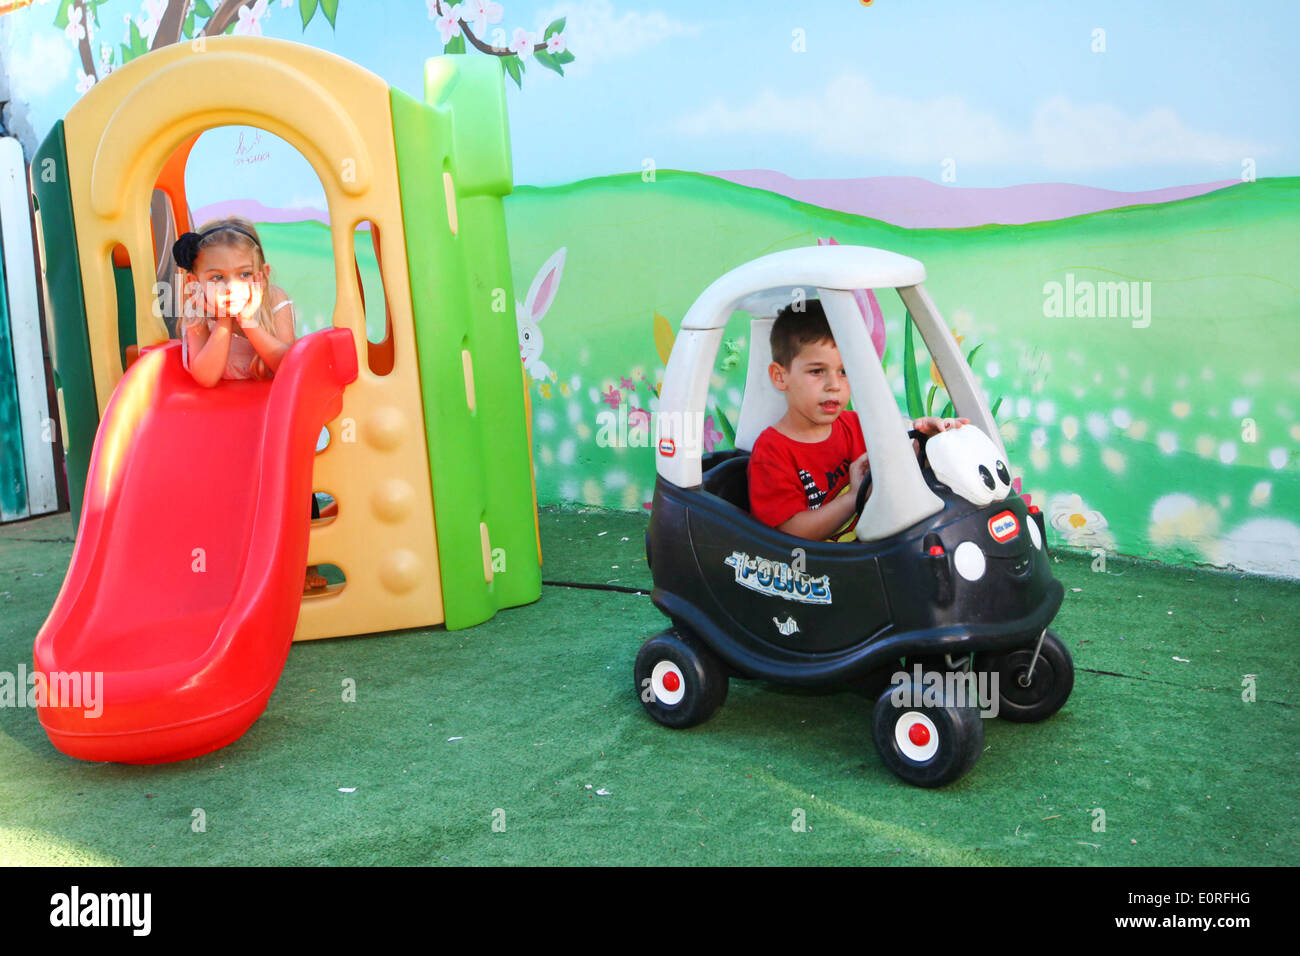 Young girl and boy play in a kindergarten playroom - Stock Image